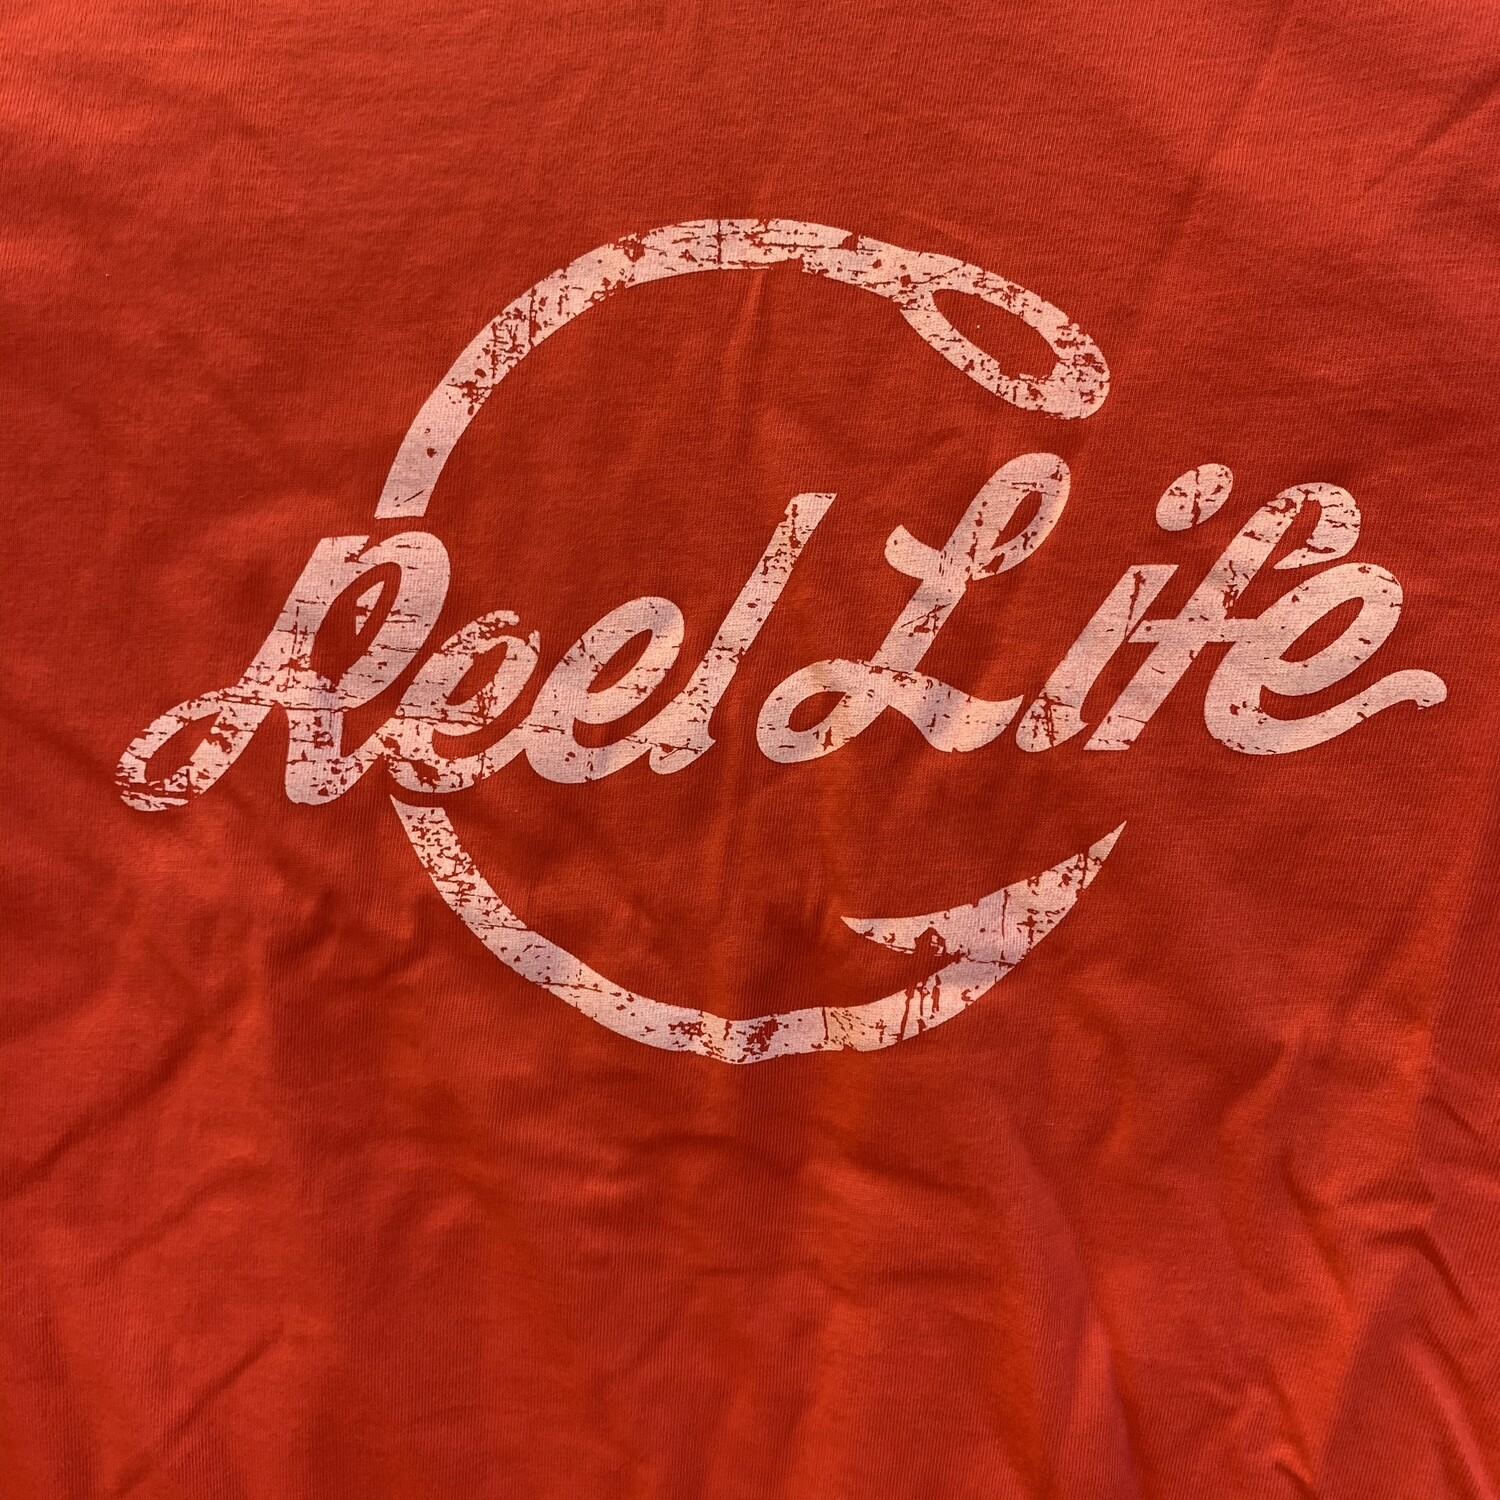 Reel Life Hooked Around SS